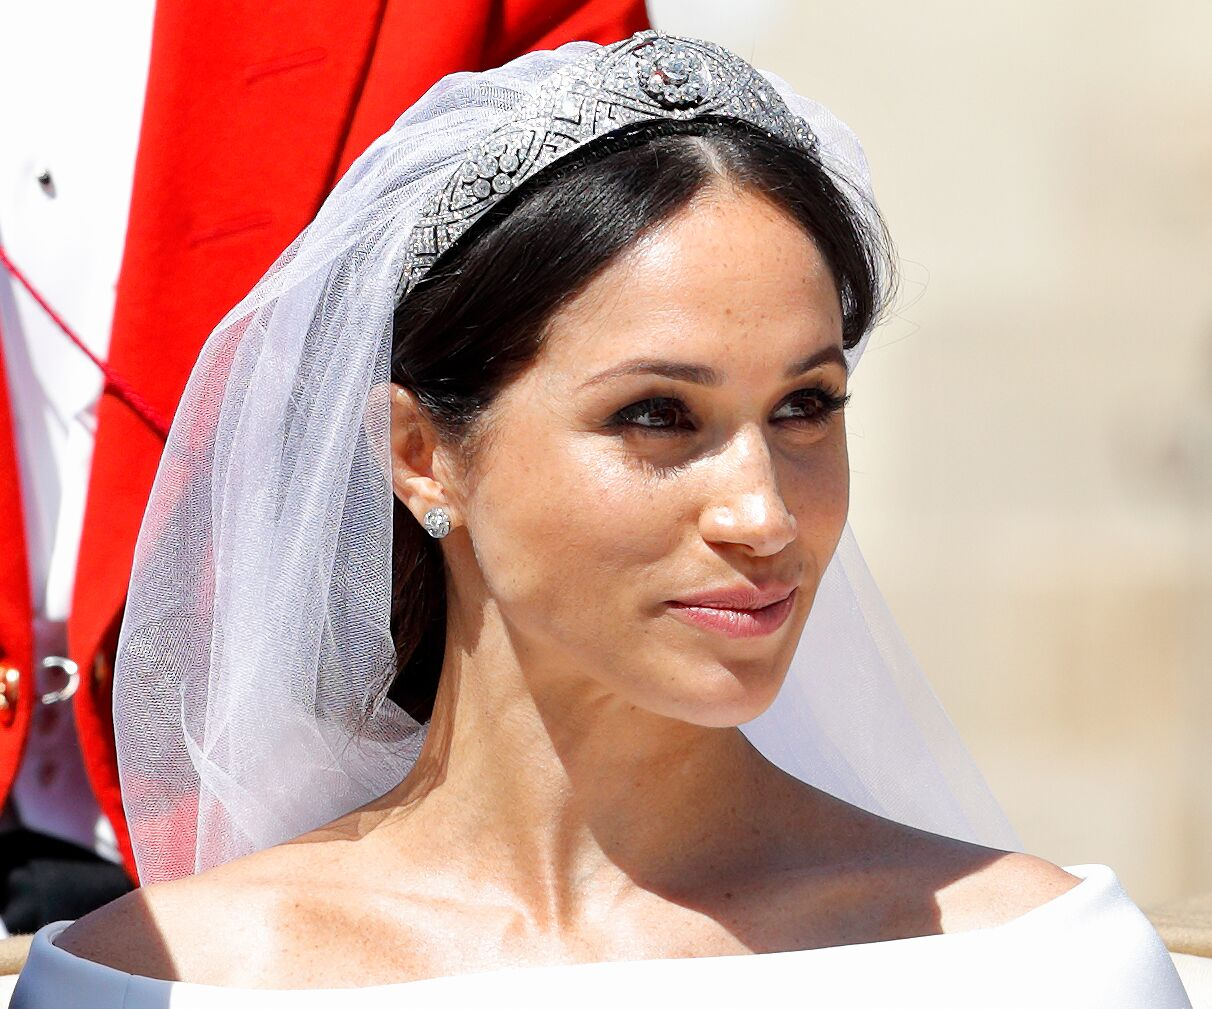 Meghan Markle on her wedding day | Getty Images / Global Images Ukraine